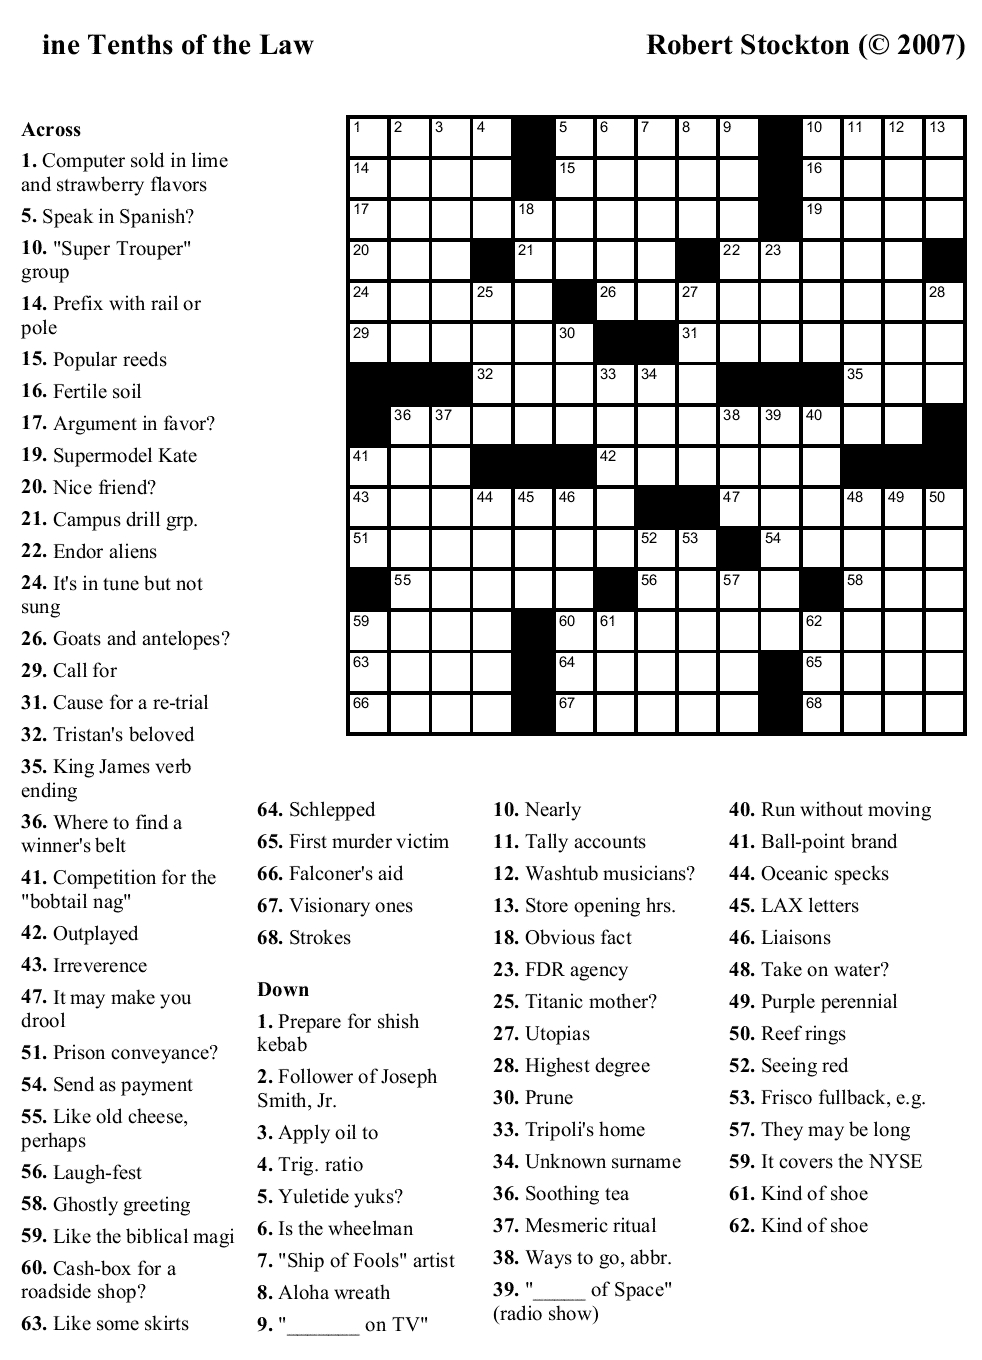 Crossword Puzzles Printable - Yahoo Image Search Results | Crossword - Free Daily Online Printable Crossword Puzzles